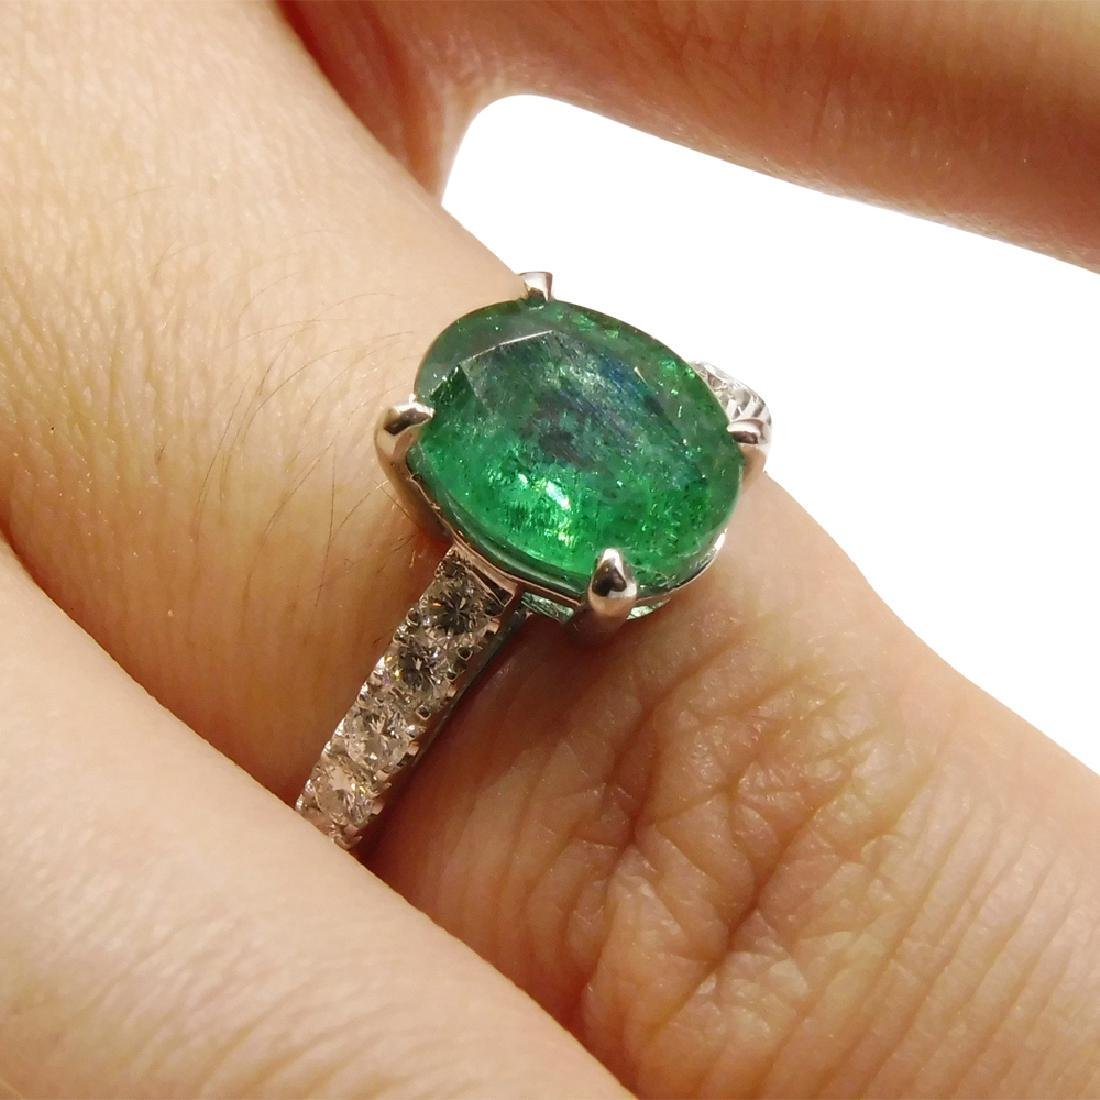 14K White Gold Emerald Diamond Ring, 1.82ct - 5